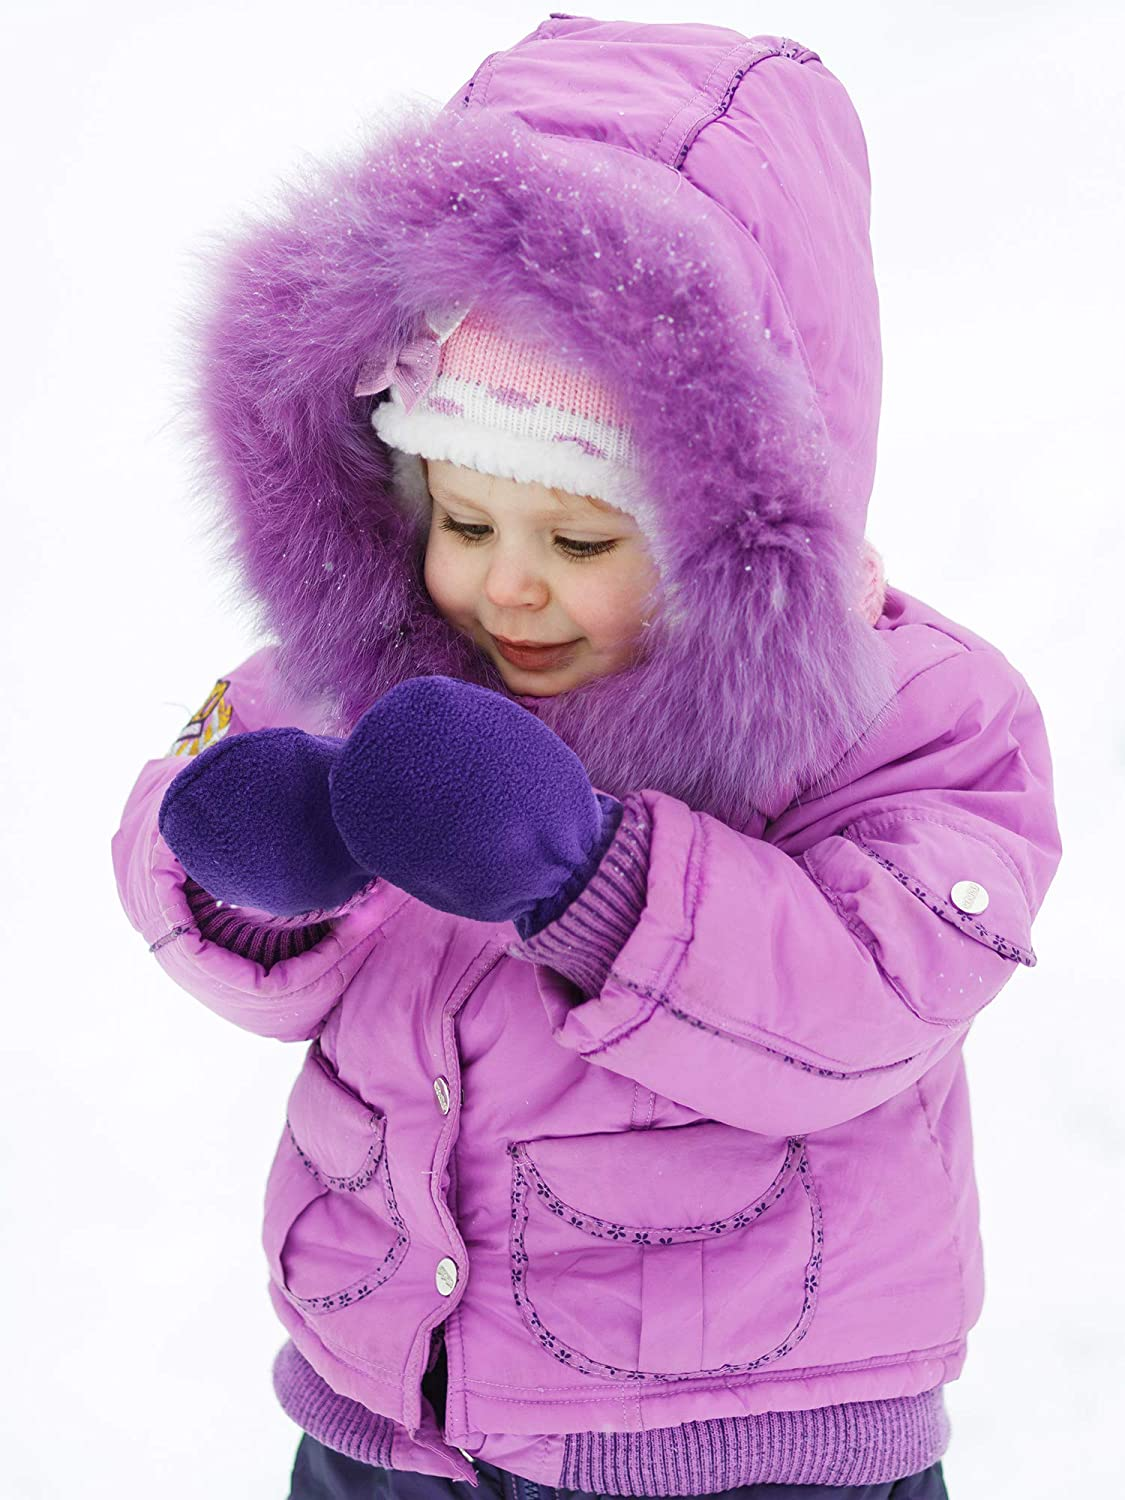 SATINIOR 3 Pairs Baby and Toddler Winter Mittens Kids Fleece Warm Mittens for Baby Boy /& Girl